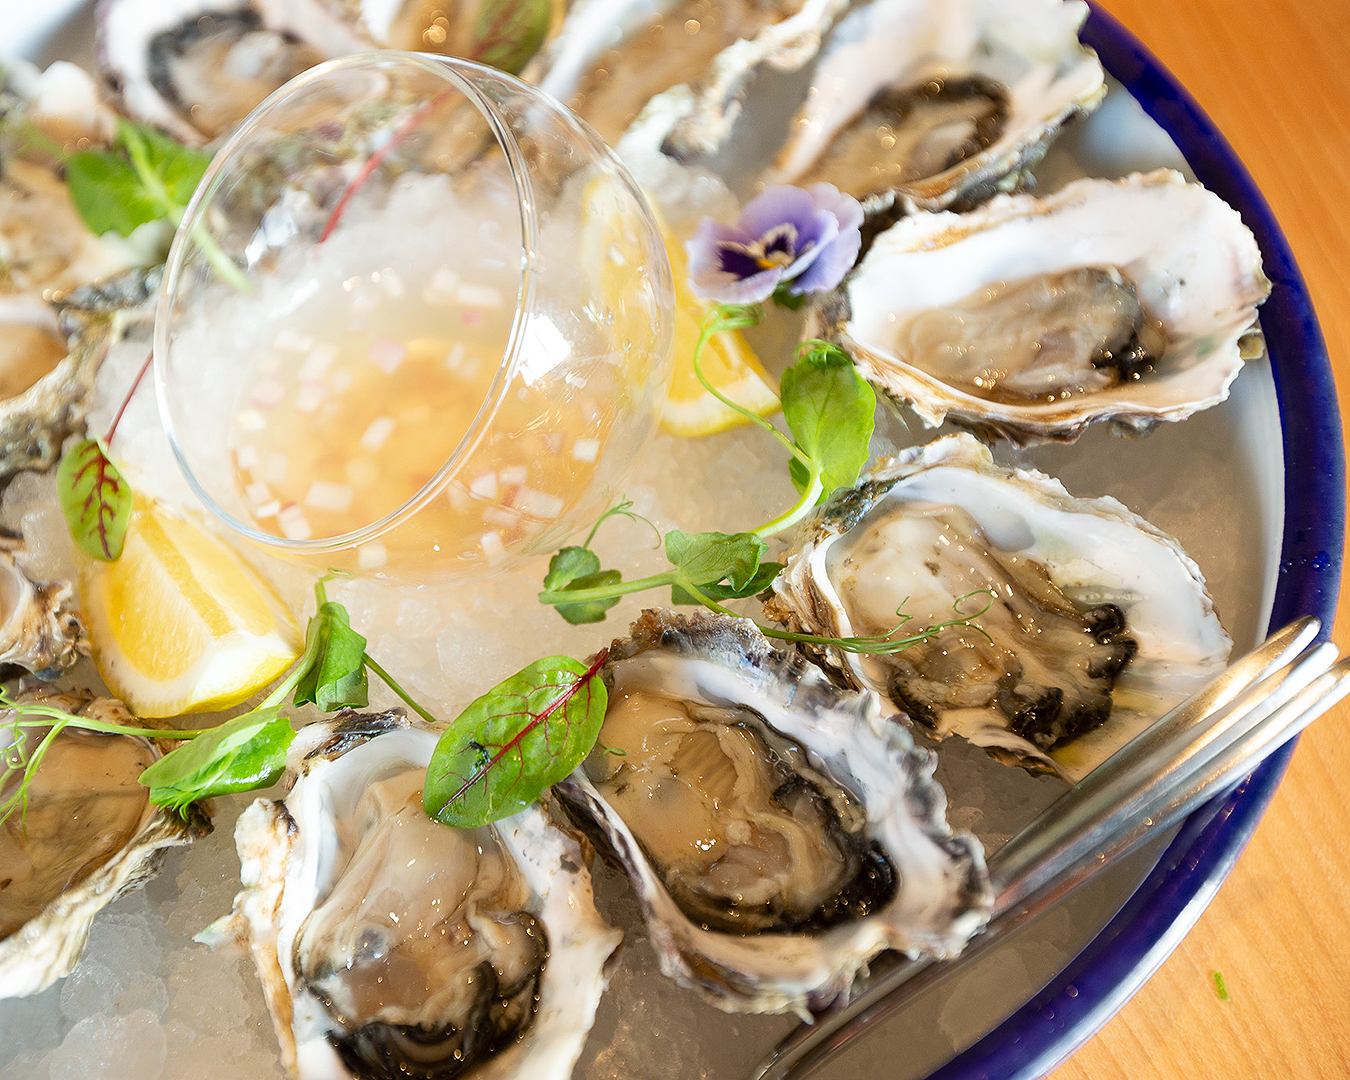 Oysters au naturel just waiting to get smashed.